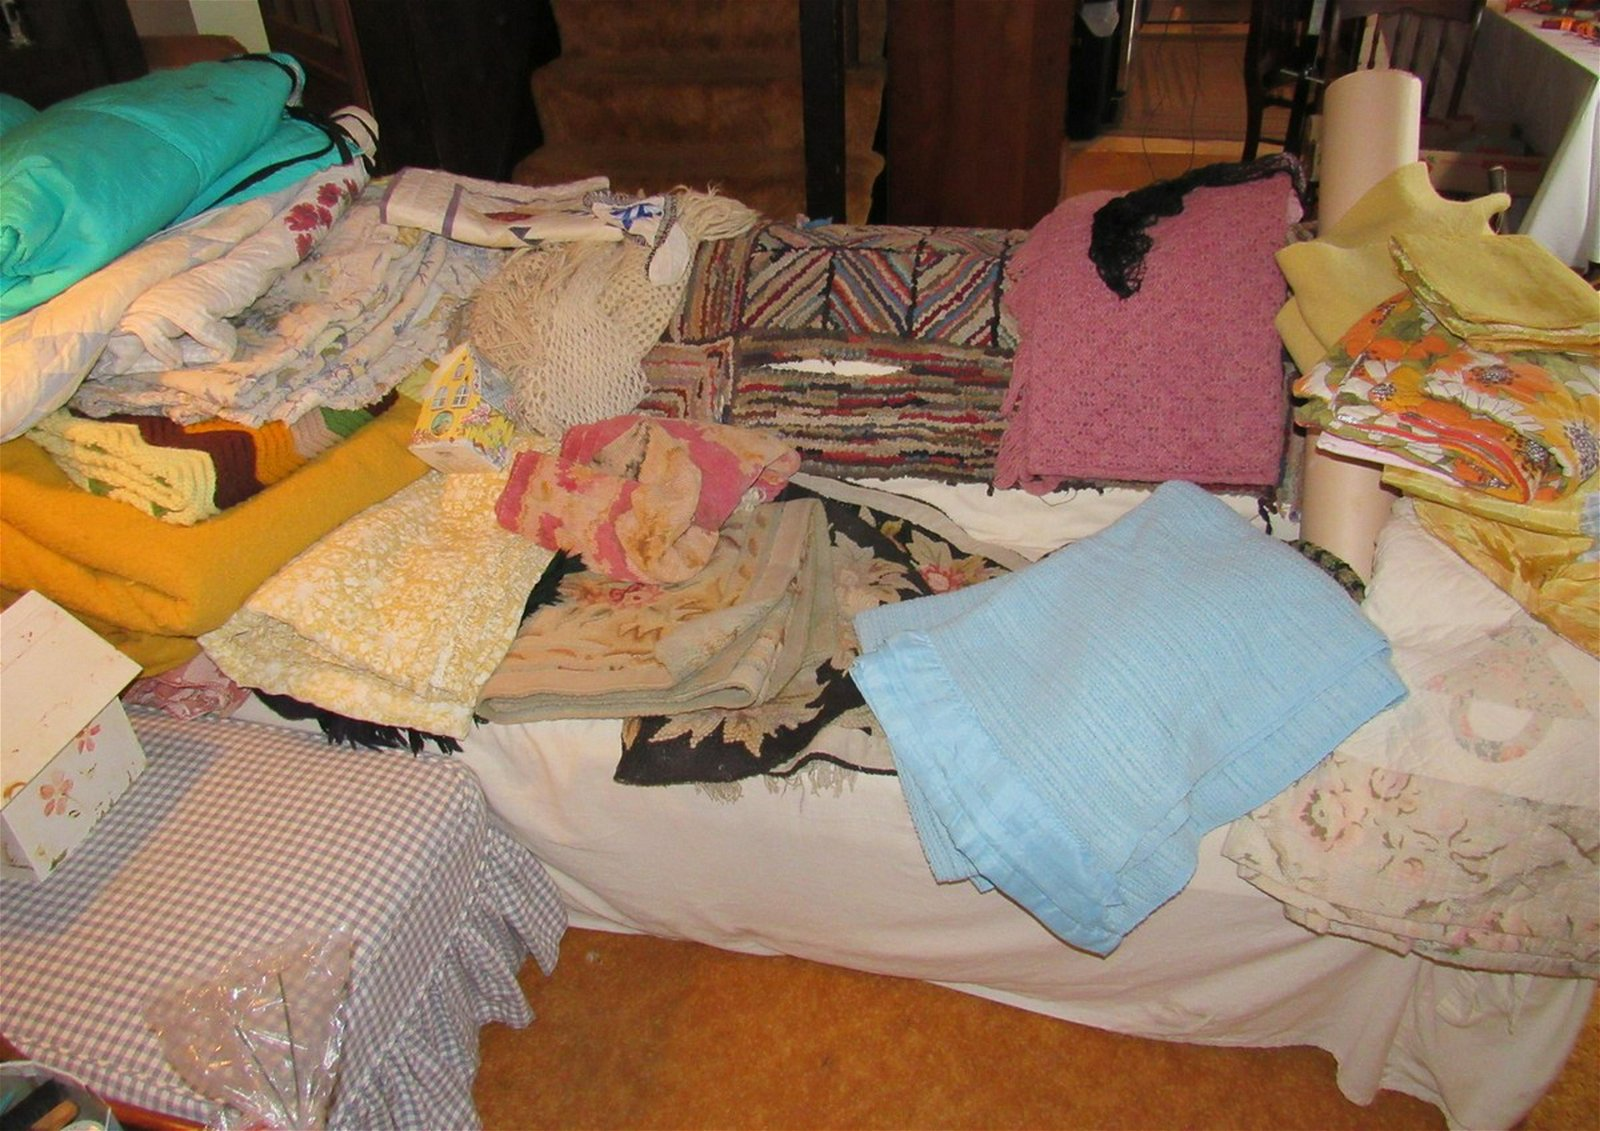 Linens Blankets Towels Placemats Cooler